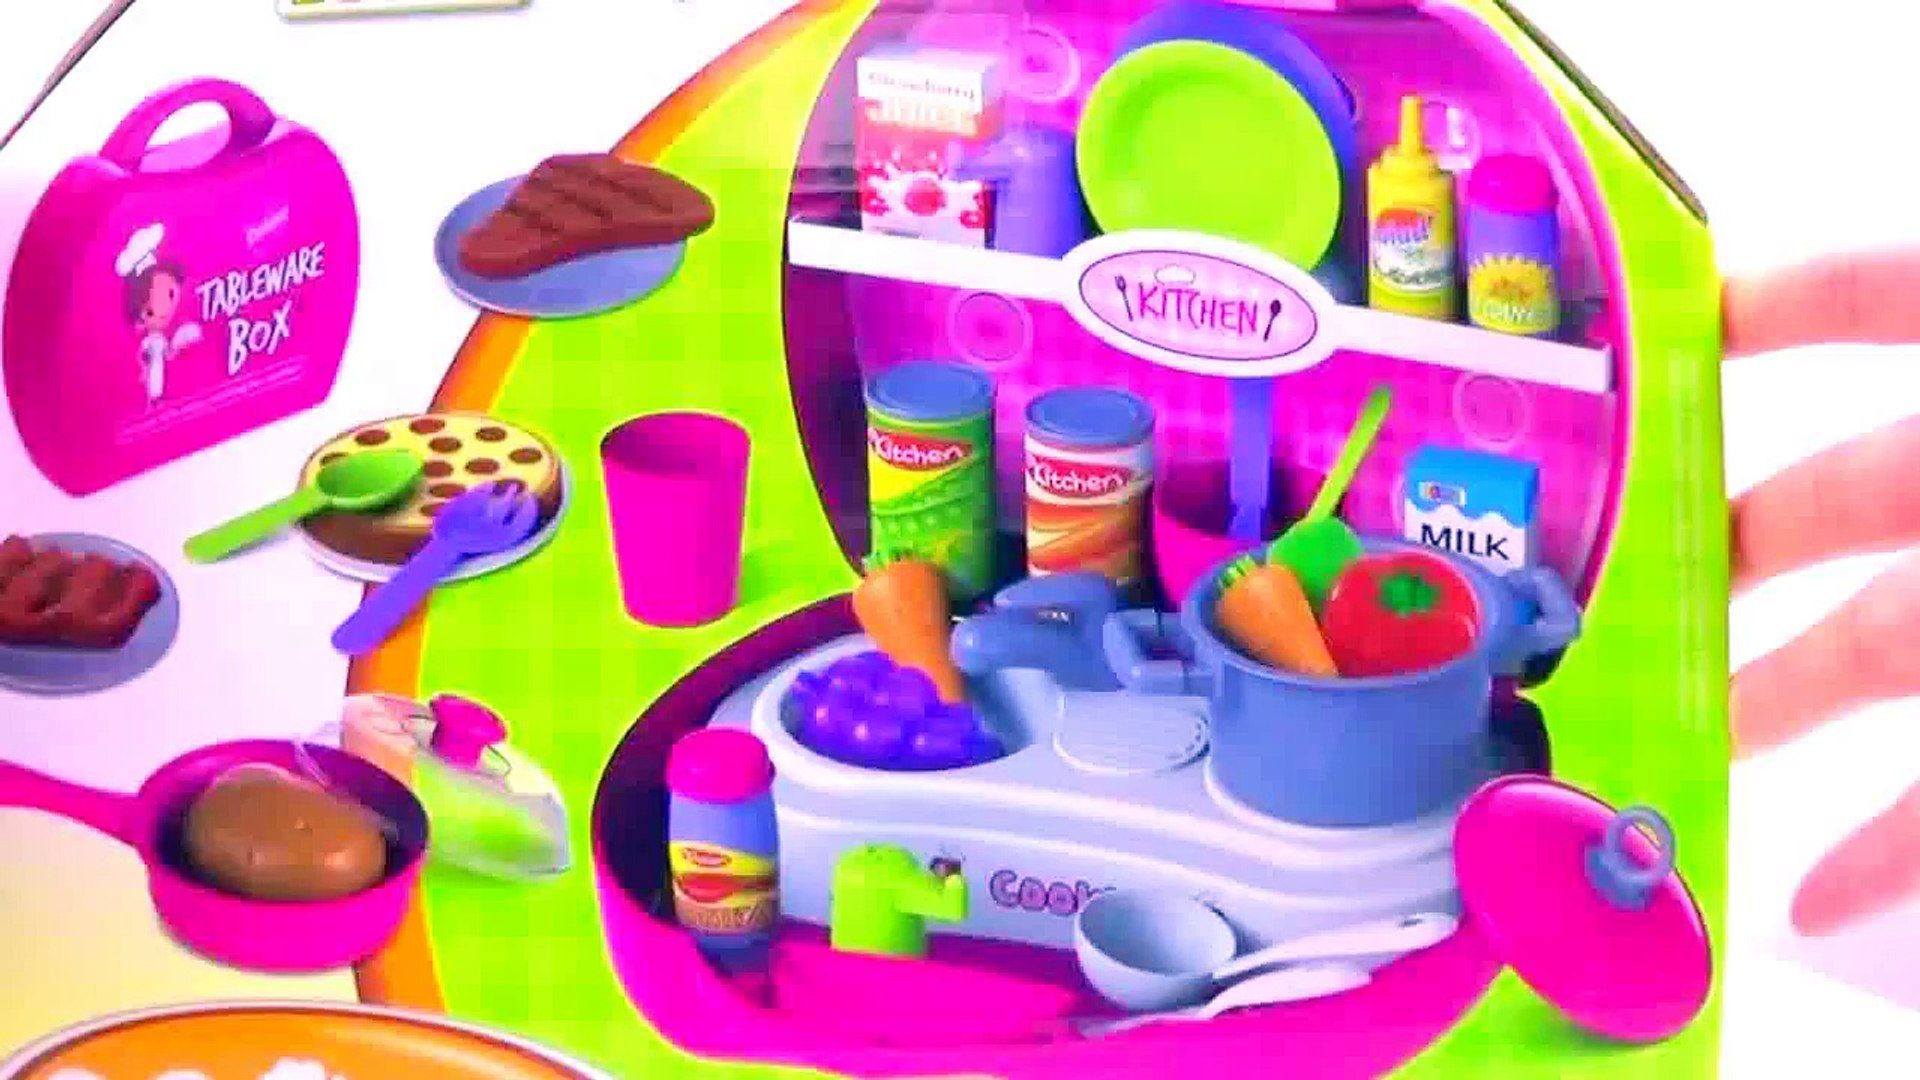 Play Kitchen & Play Doh food * Kids pretend cooking